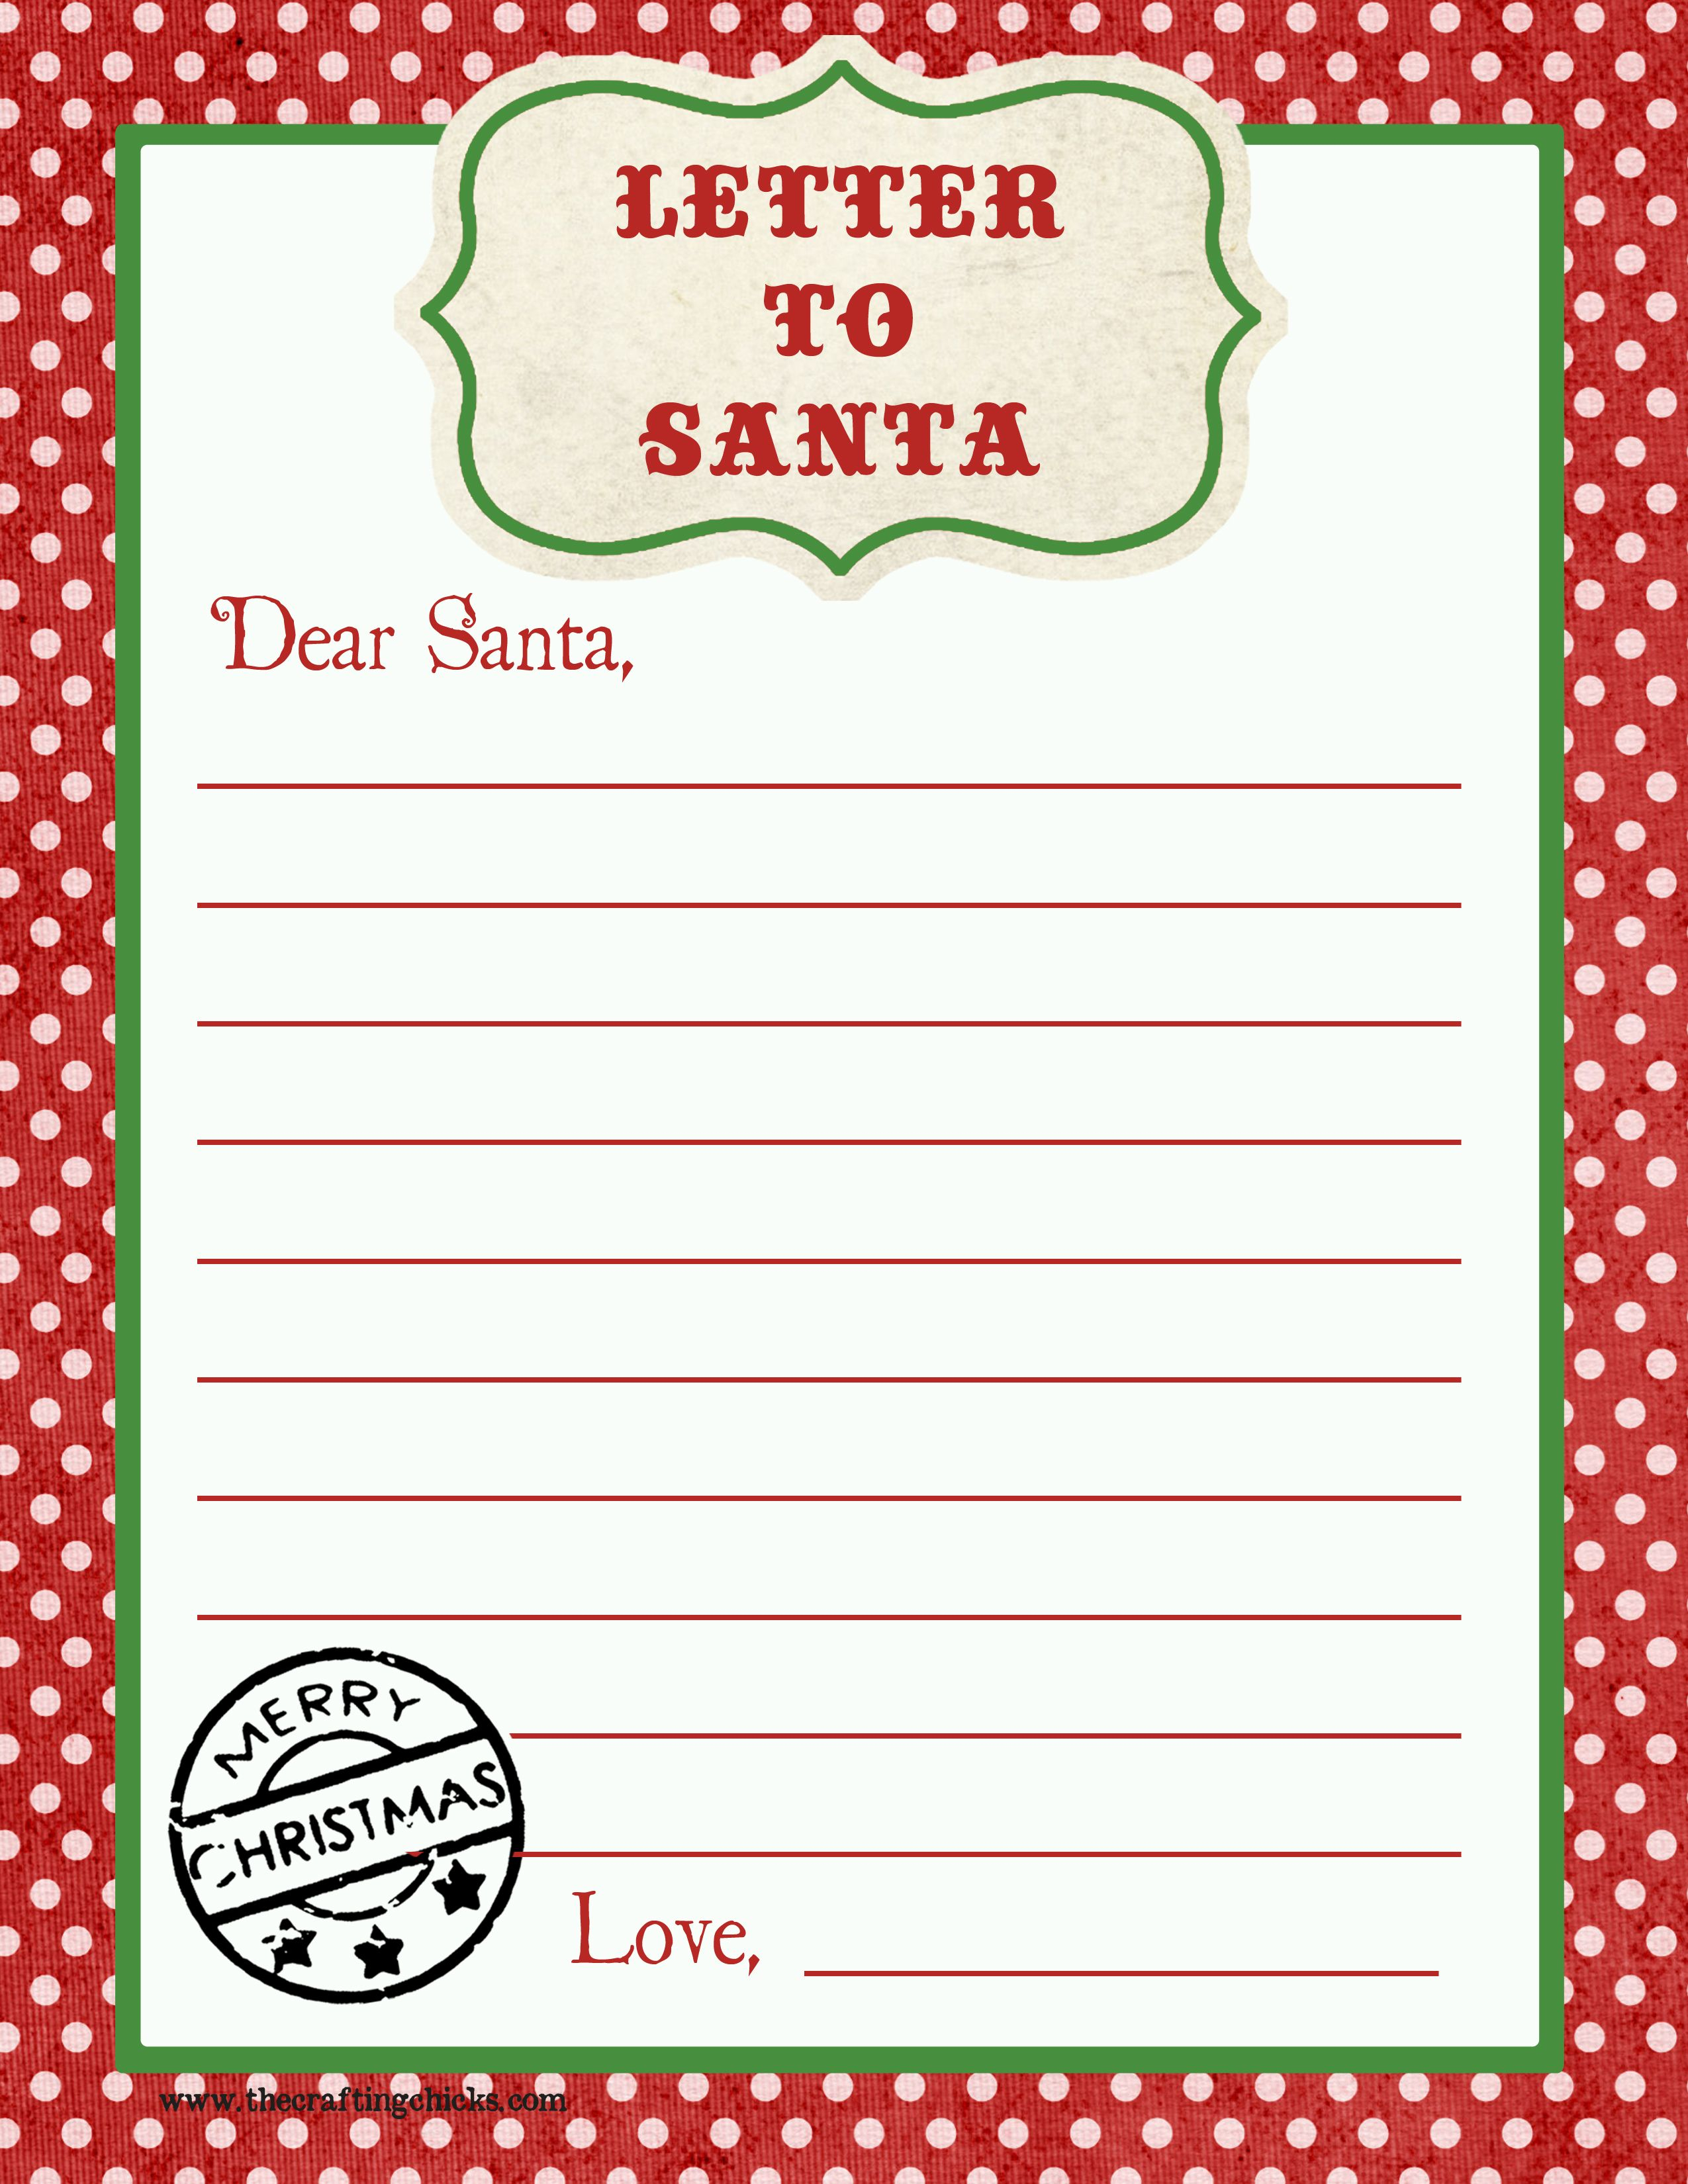 Free Letter to Santa Template Printable - Letter to Santa Free Printable Download